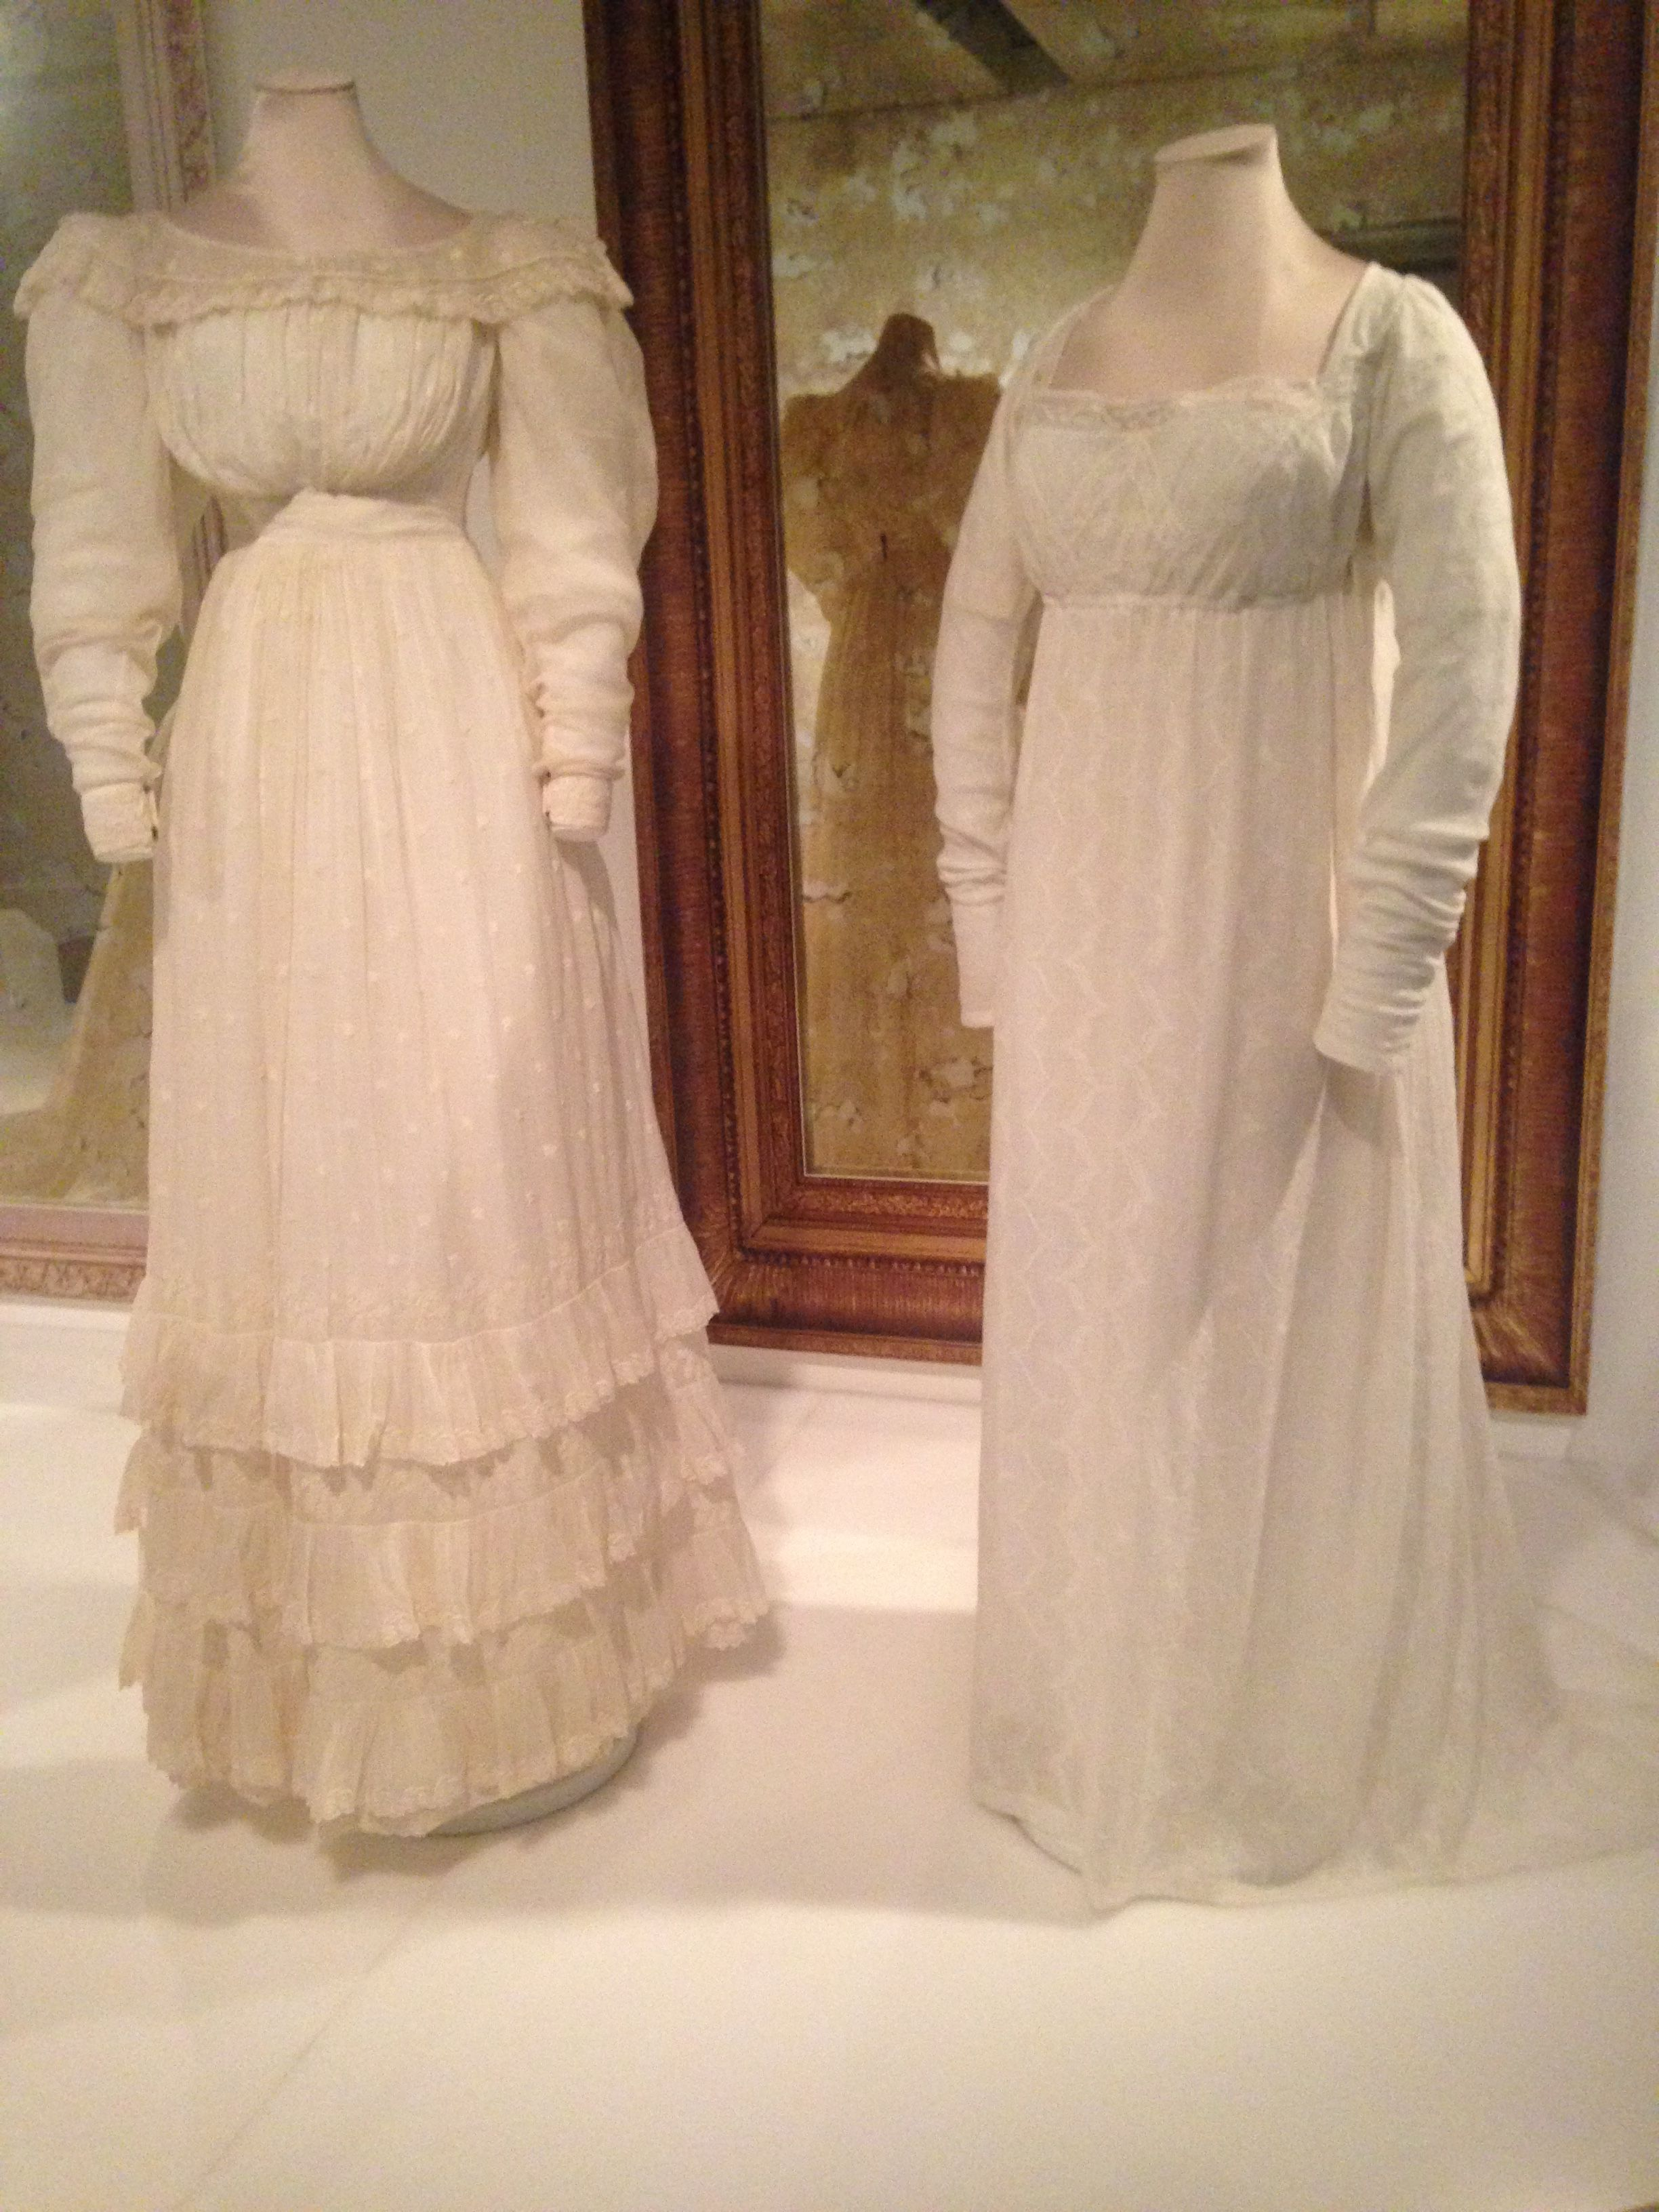 Exhibition of Victorian Clothing.